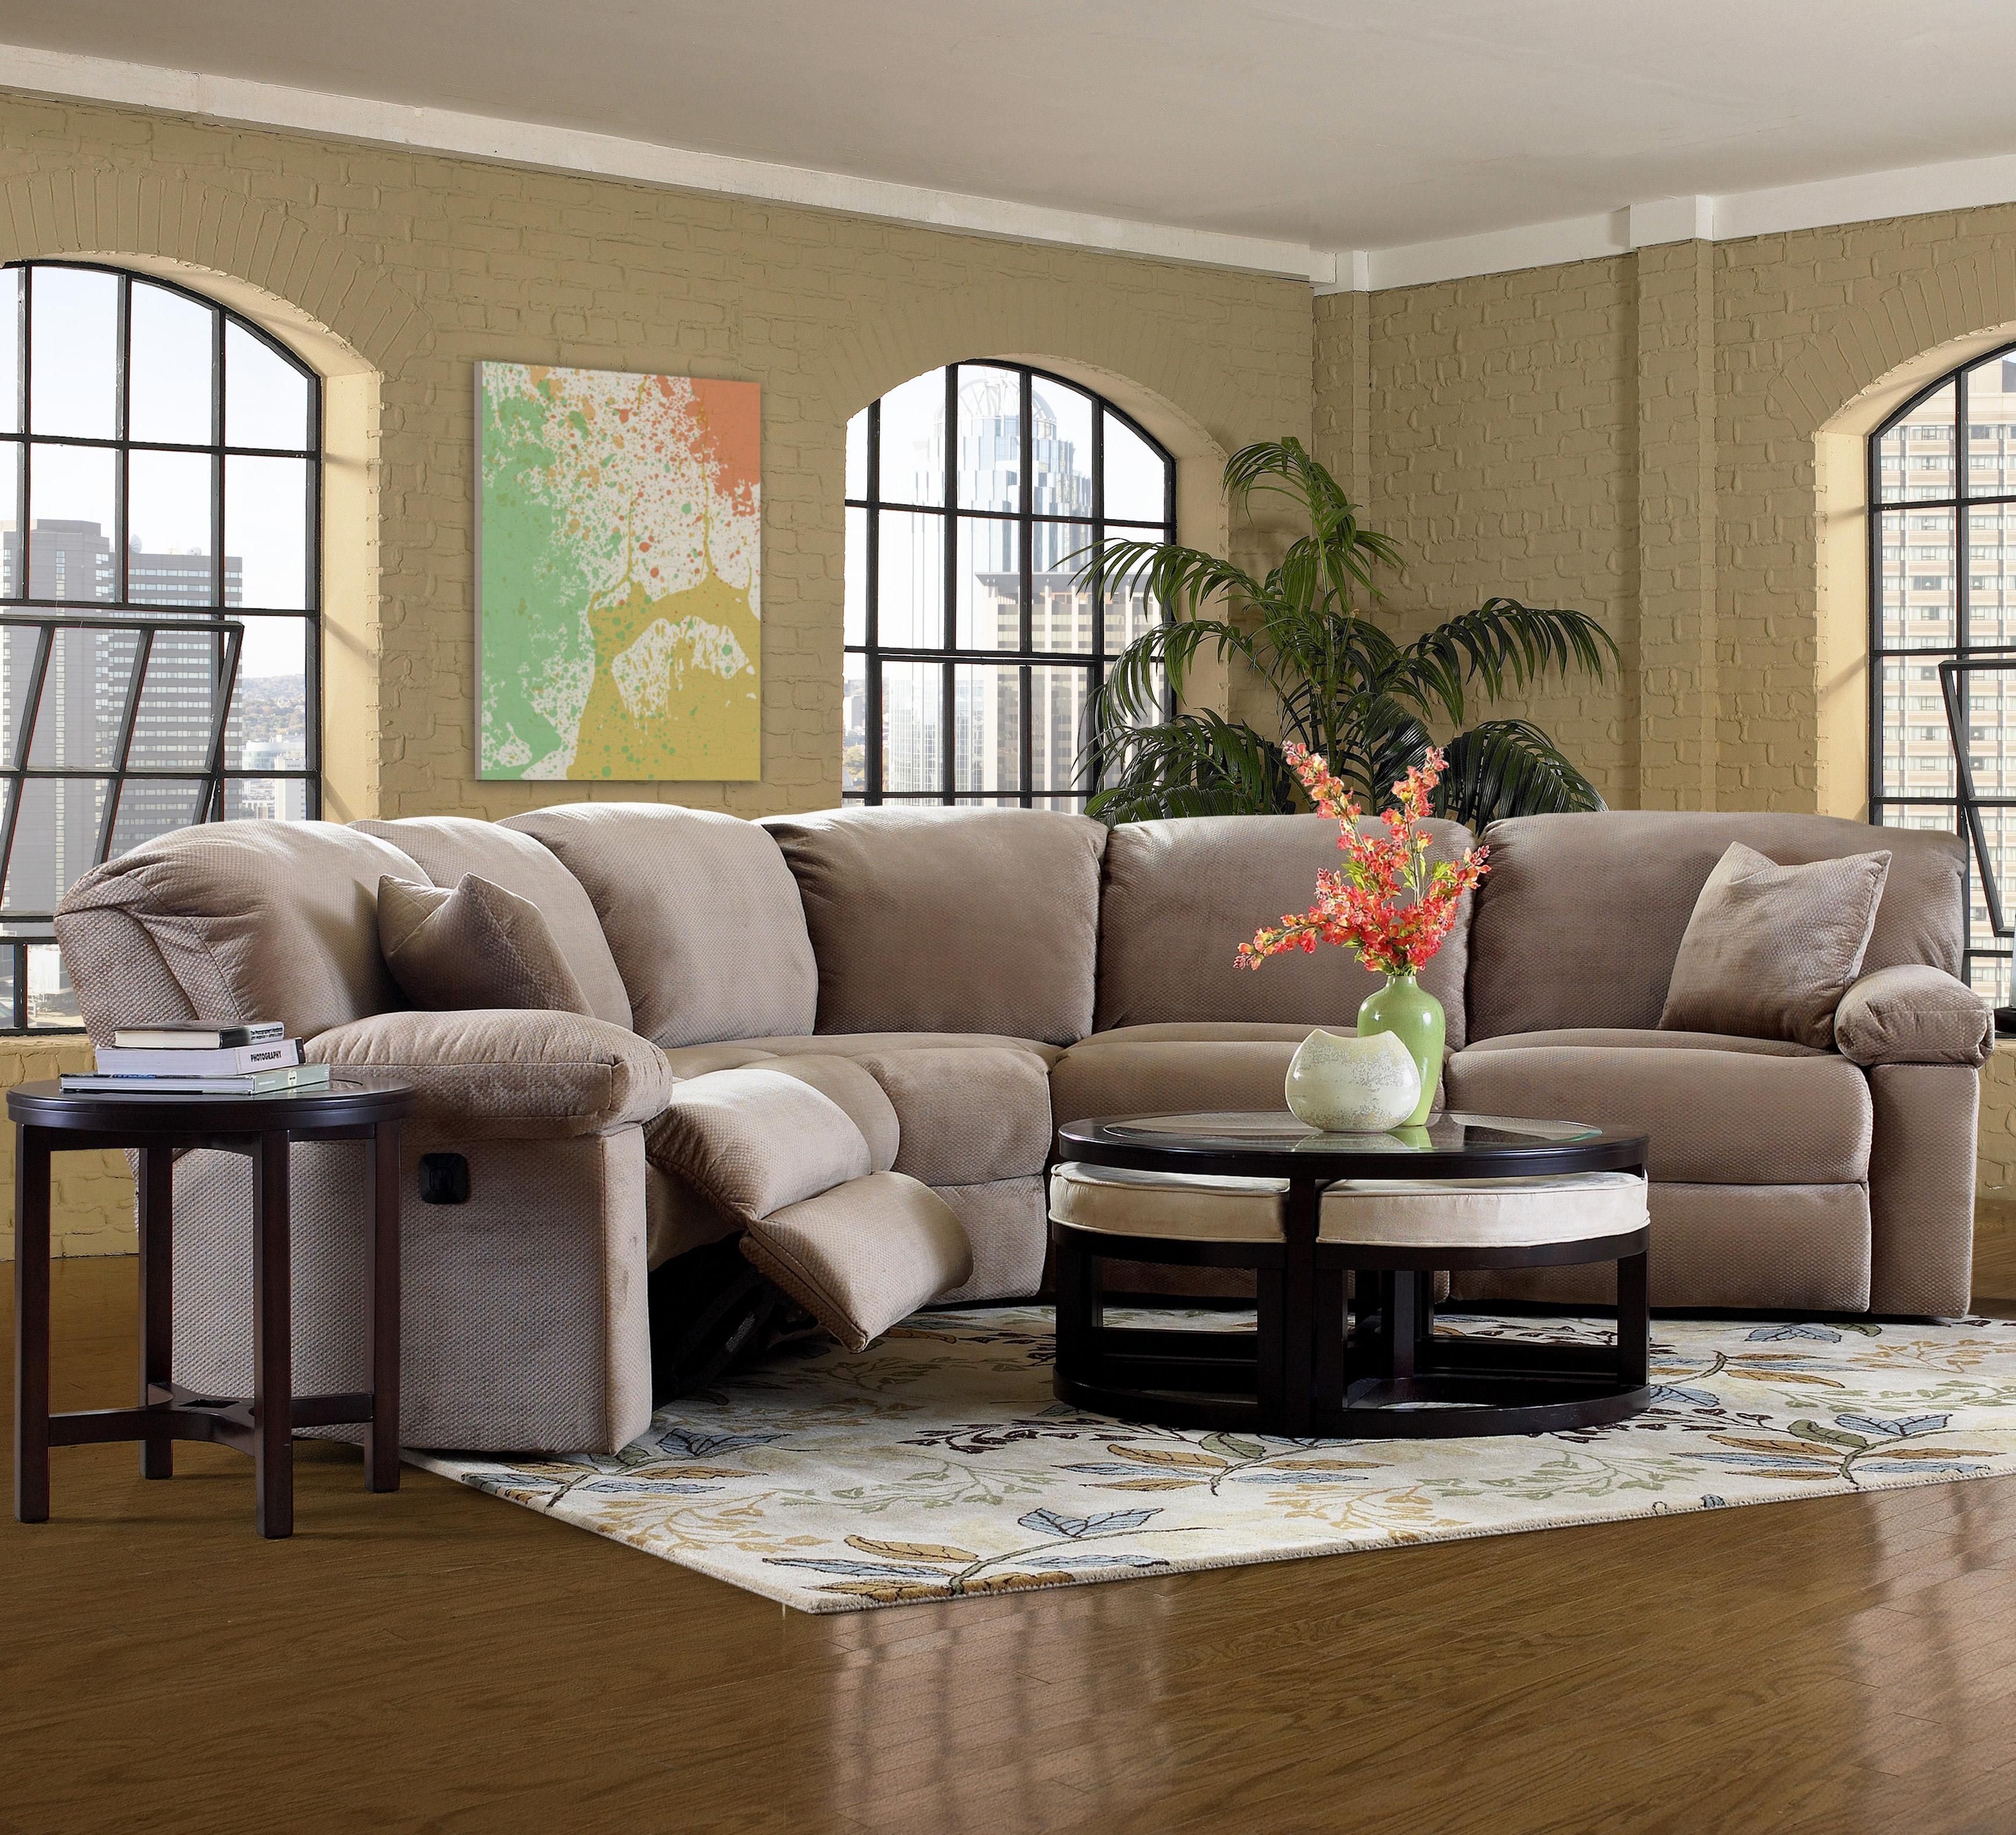 Klaussner Sofa And Loveseat Set Come Bed Pic Furniture Kensington Collection 3 Piece Power